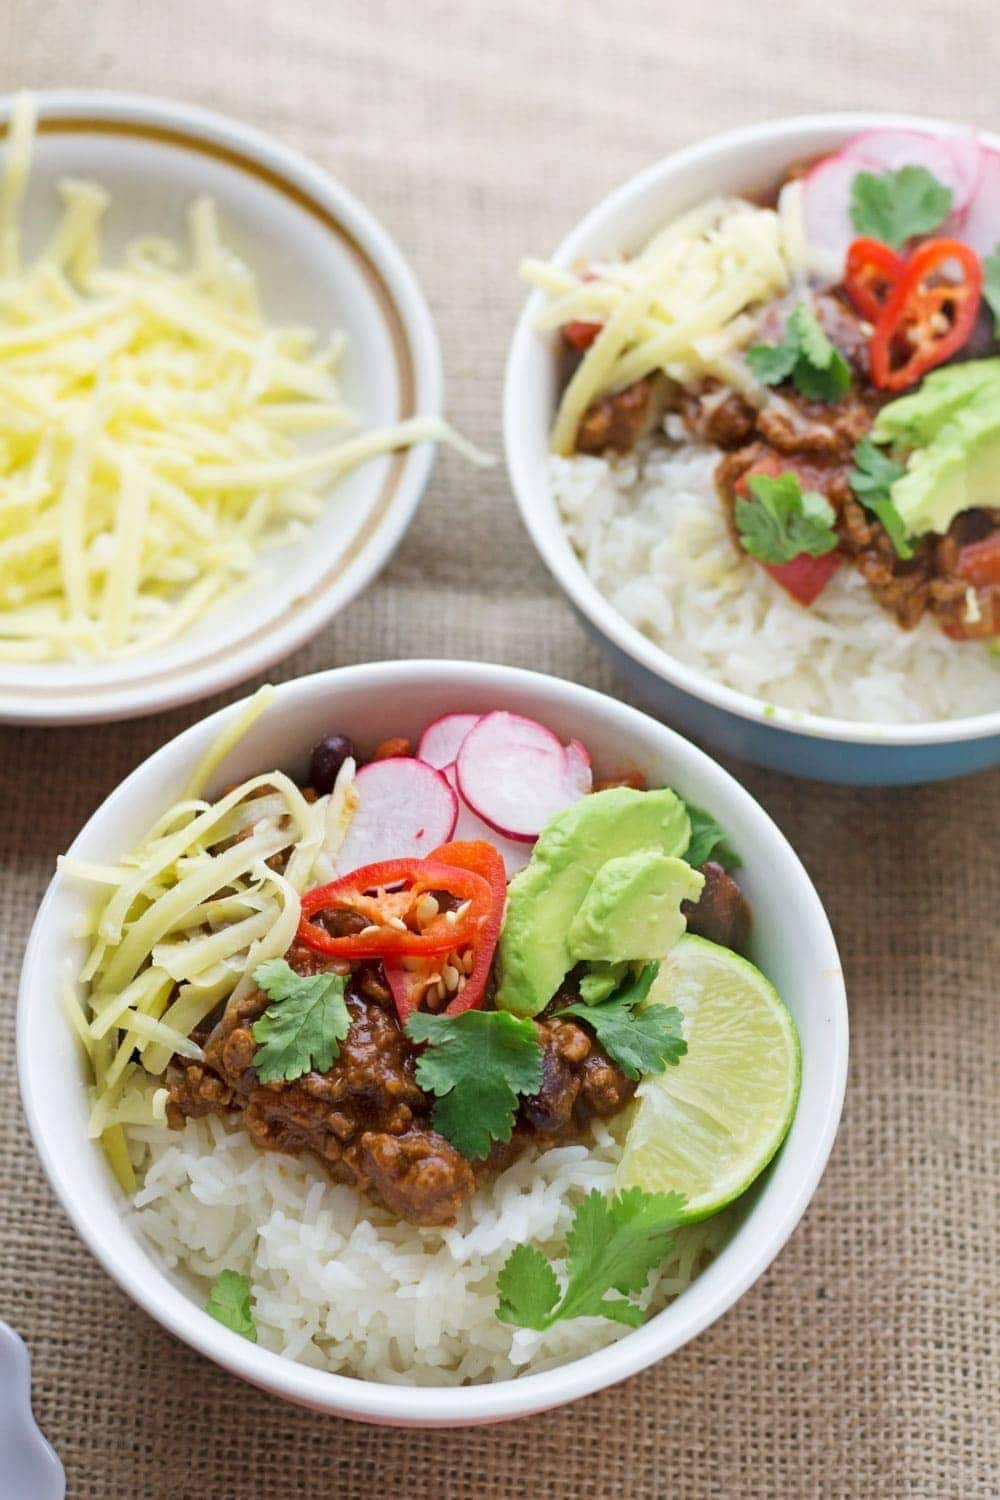 There are few things better than a classic beef chilli con carne. Make sure you don't forget the toppings, the more the better!